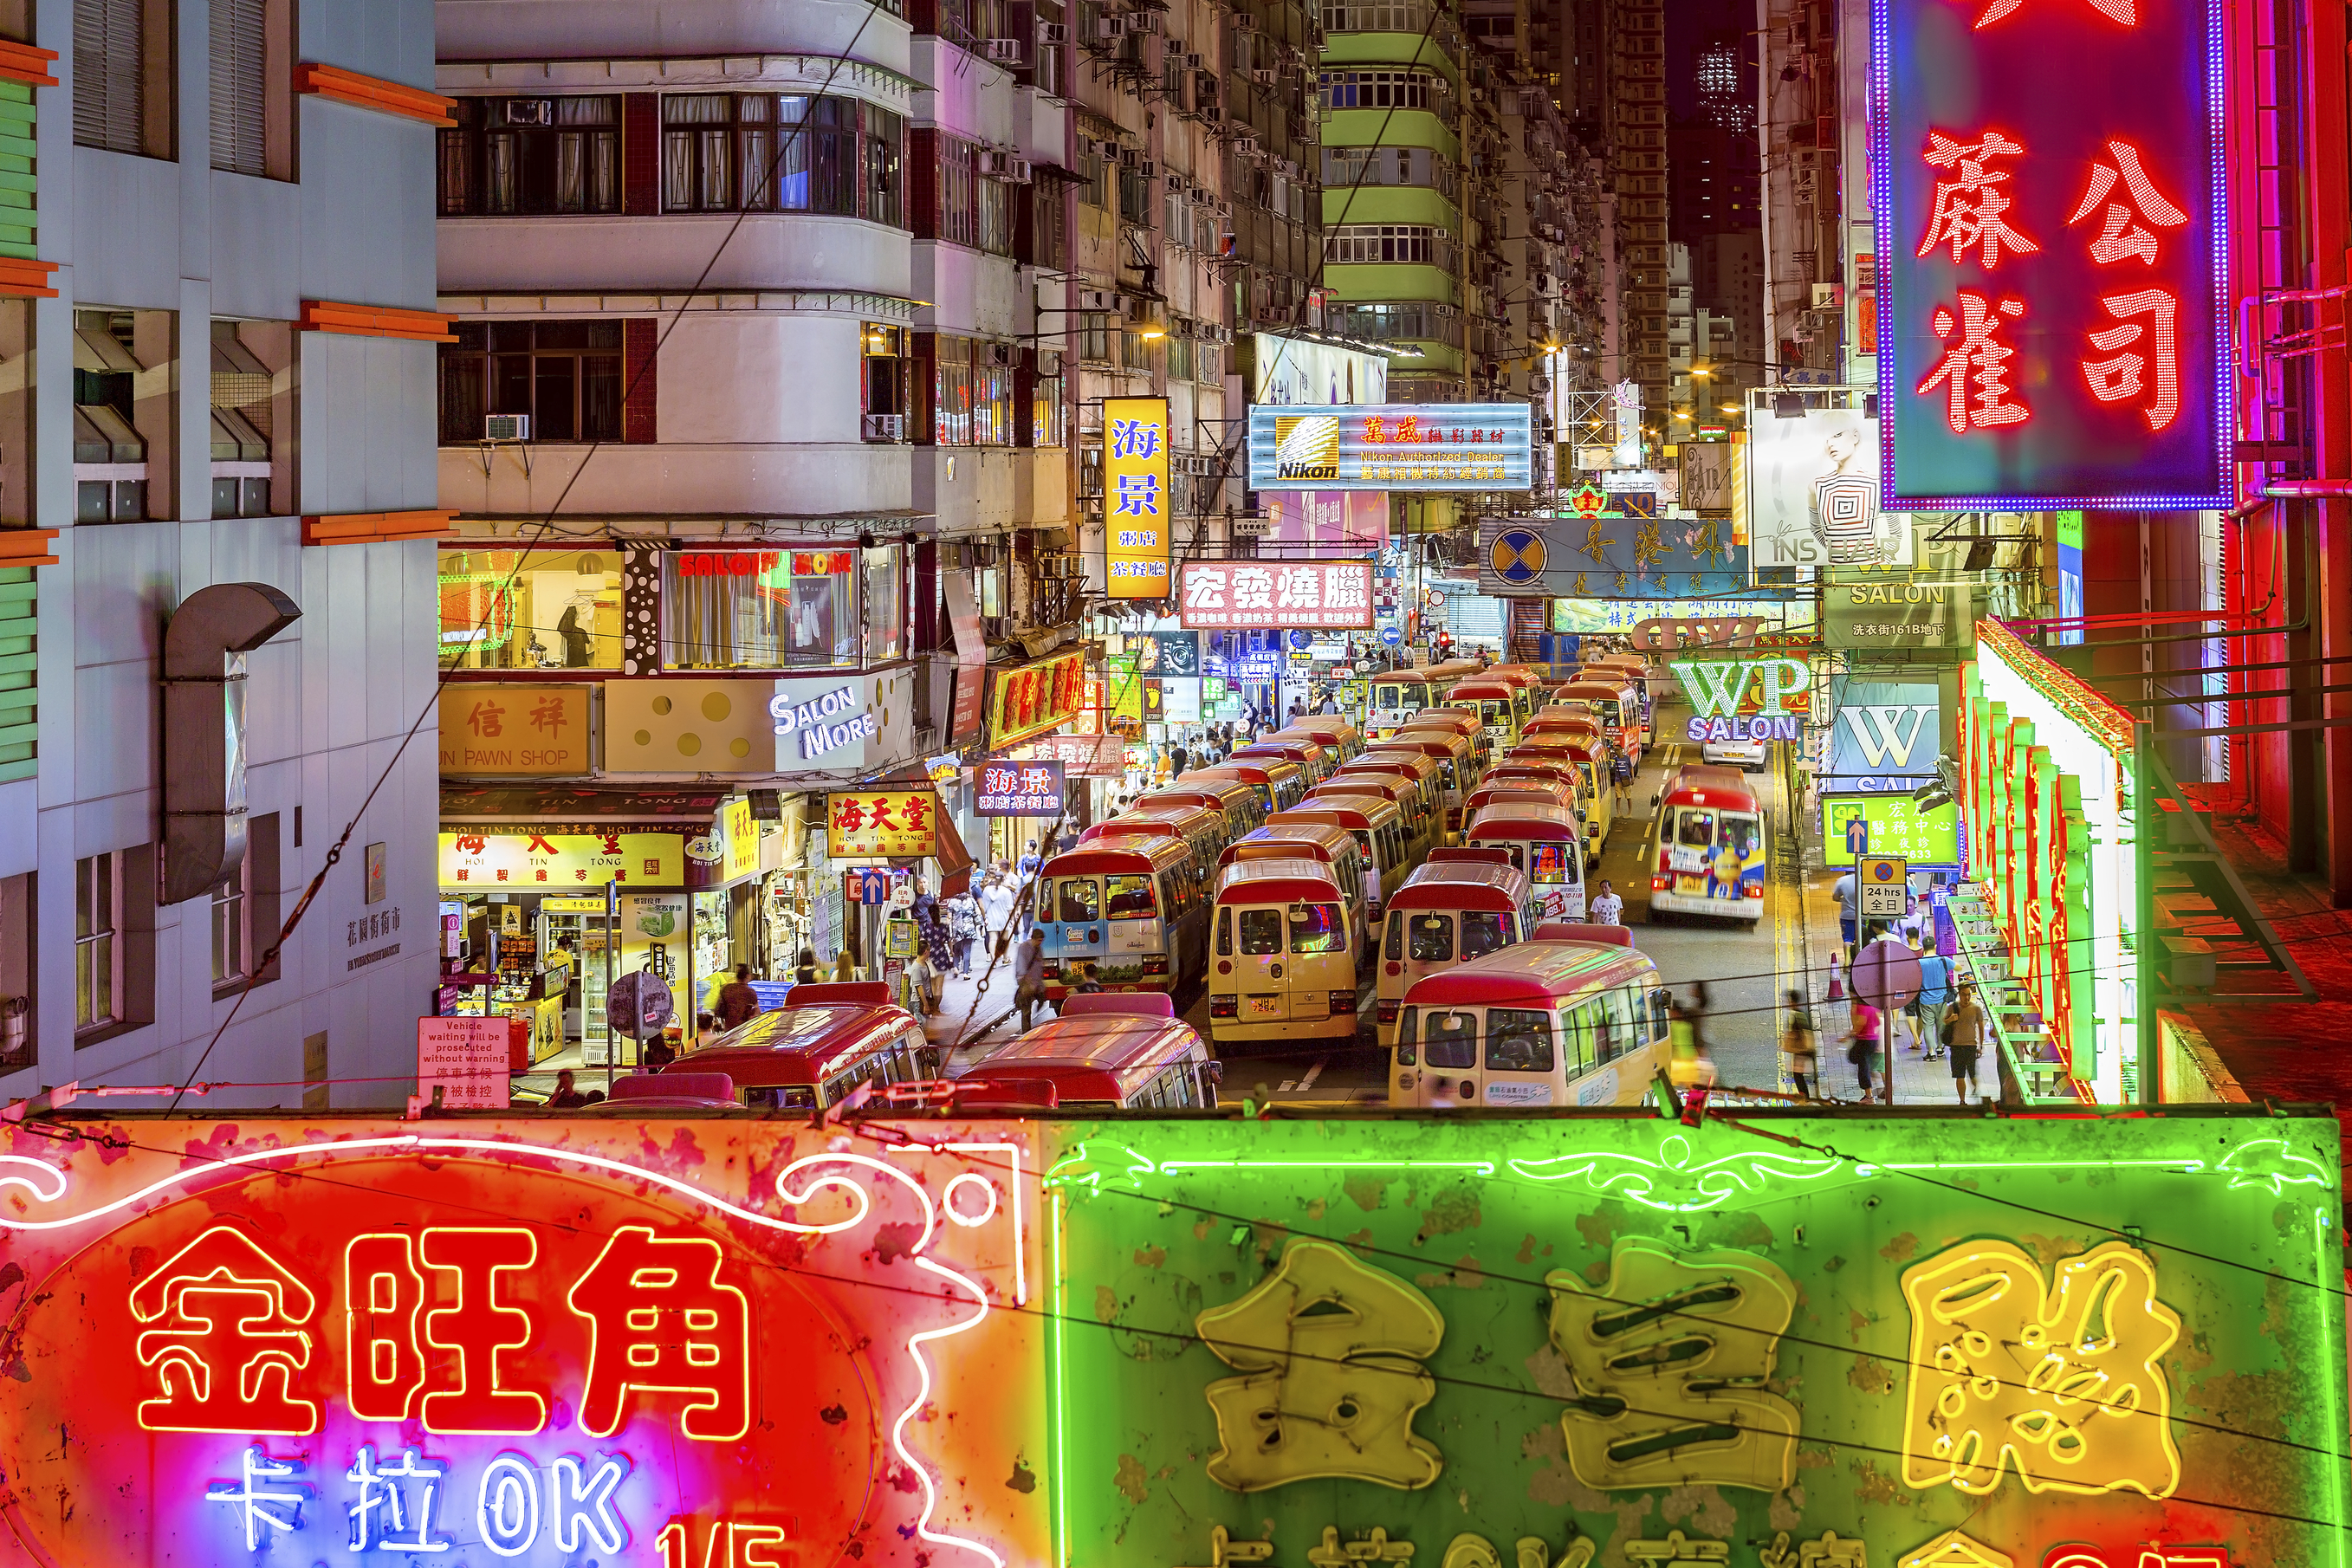 A head start: Unless a Japanese individual has actually studied the Chinese language, a person claiming to be able to 'read' Chinese can be taken to mean he or she can look at signs, menus or printed text and recognize lots of familiar words. | ISTOCK